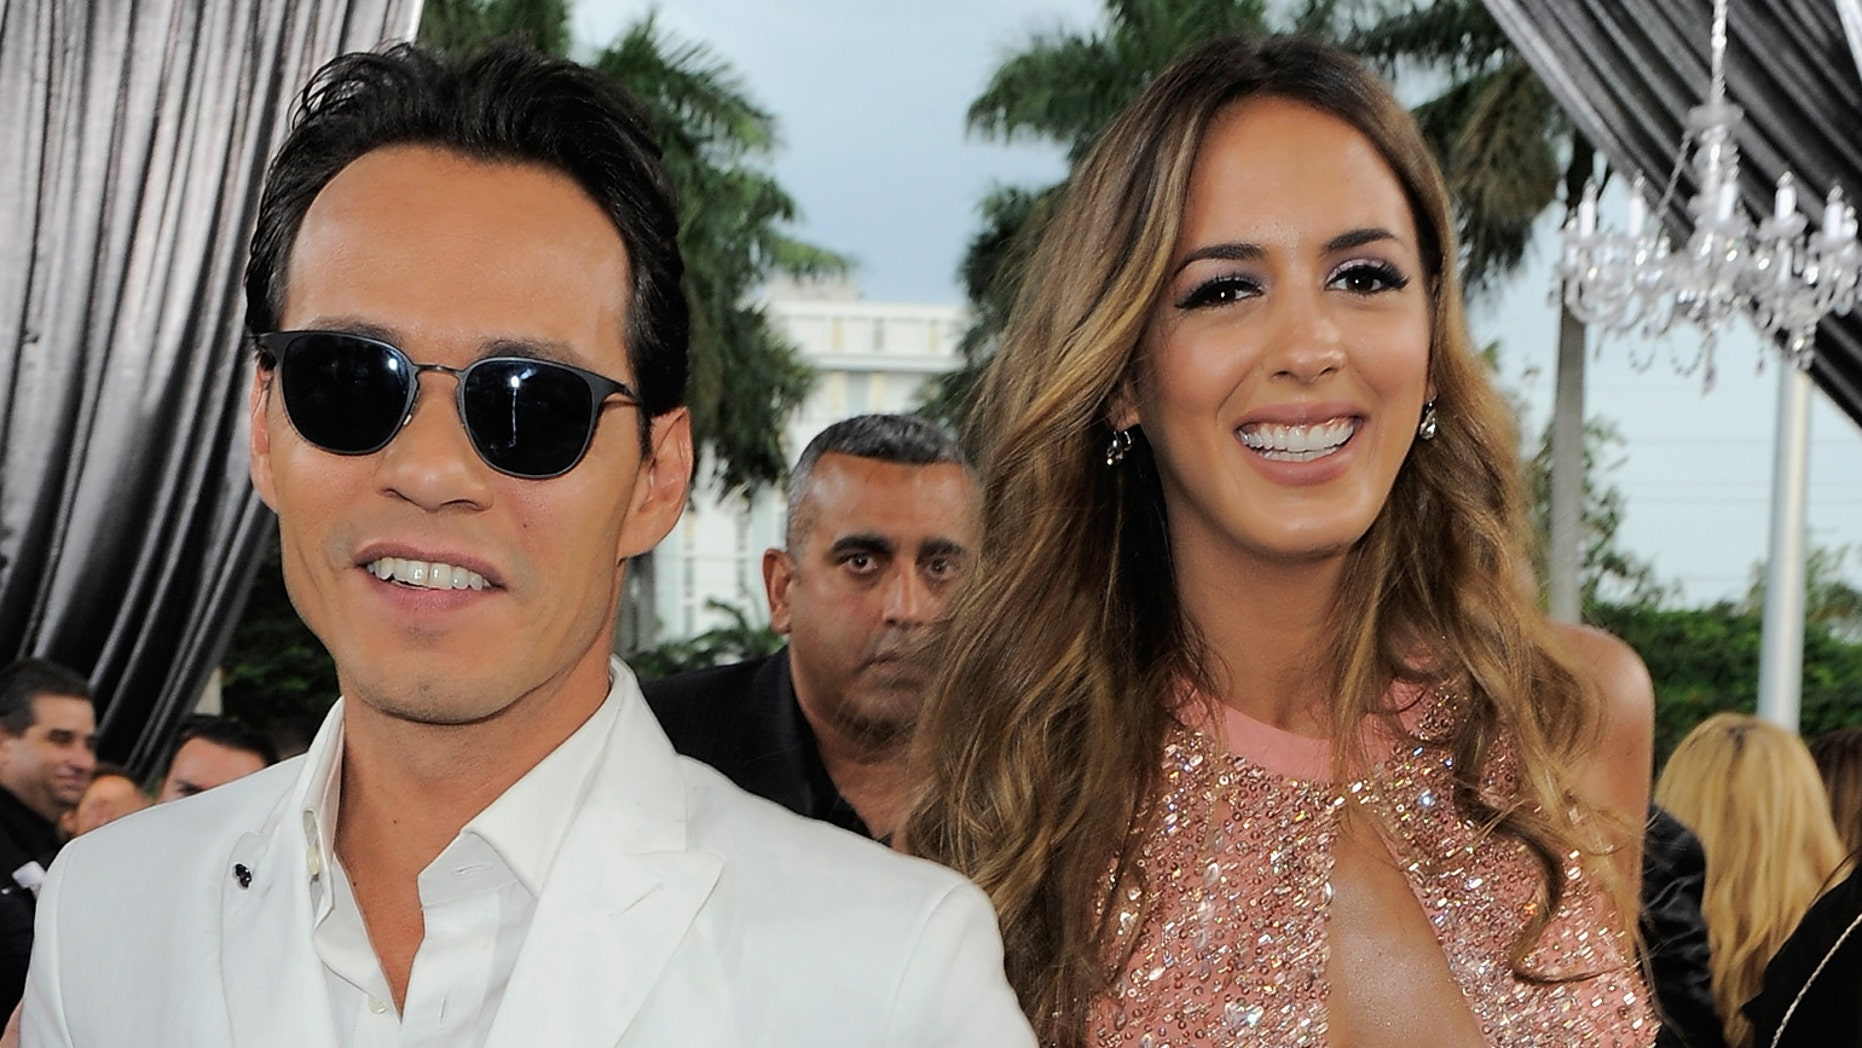 """MIAMI, FL - APRIL 30:  Marc Anthony and Shannon De Lima attend the 2015 Billboard Latin Music Awards """"Premios Billboard"""" at BankUnited Center on April 30, 2015 in Miami, Florida.  (Photo by Sergi Alexander/Getty Images for Billboard)"""